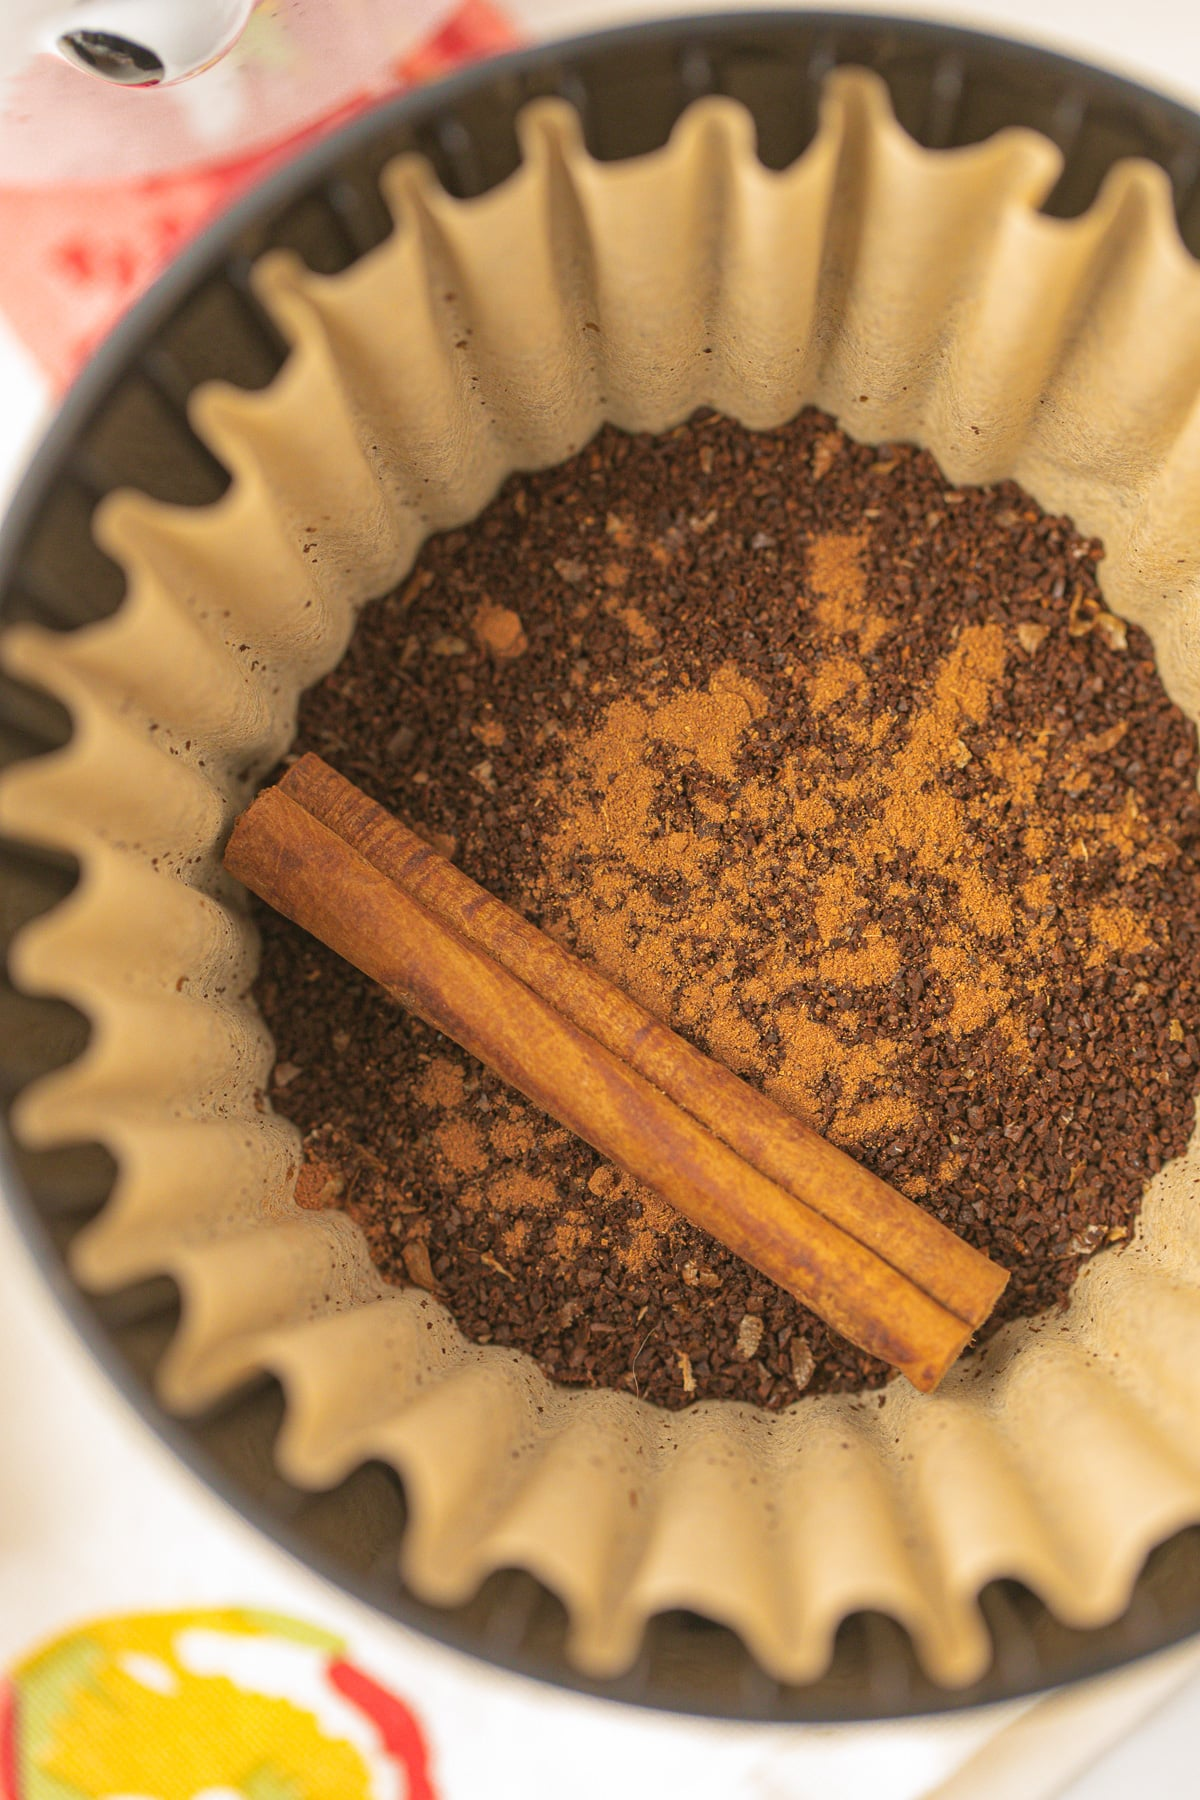 coffee filter with ground coffee, pumpkin spice, and a cinnamon stick